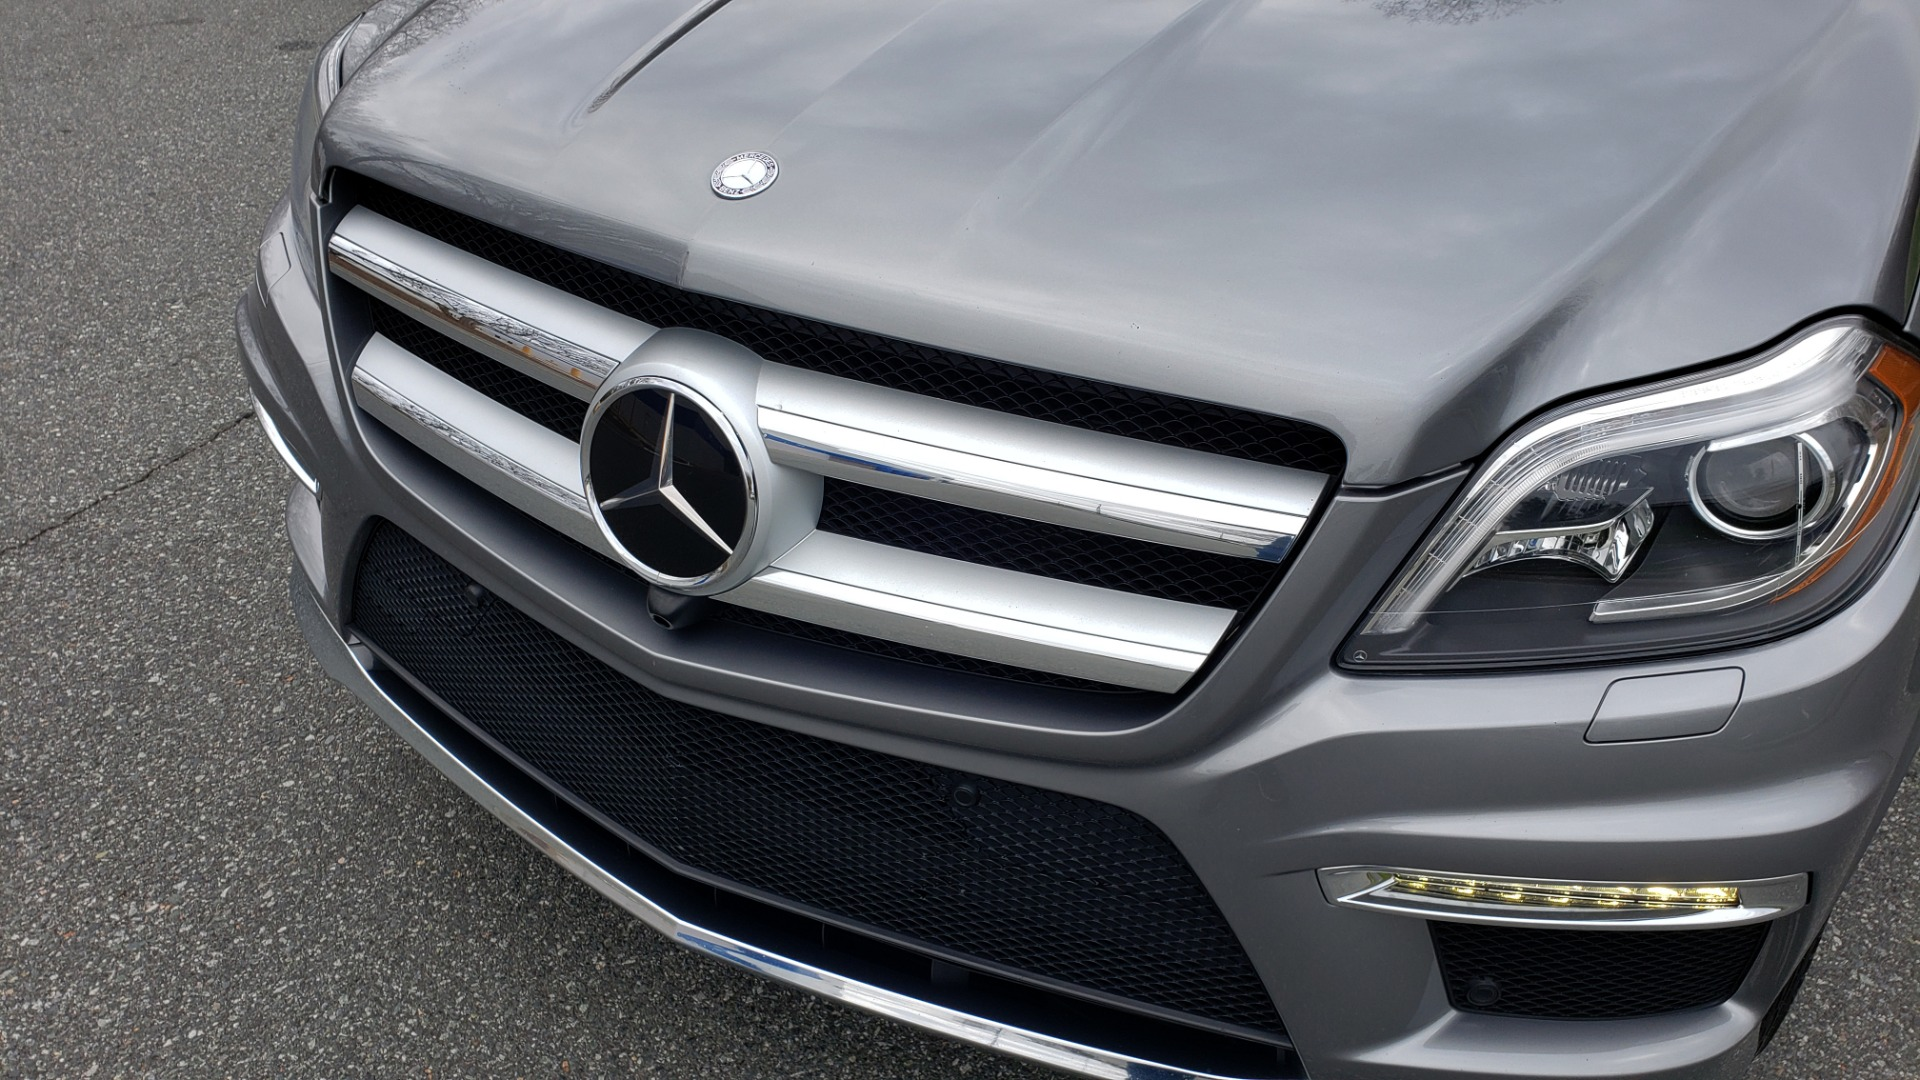 Used 2016 Mercedes-Benz GL 550 4MATIC / NAV / DRVR ASST / DUAL-ROOF / REARVIEW for sale Sold at Formula Imports in Charlotte NC 28227 26